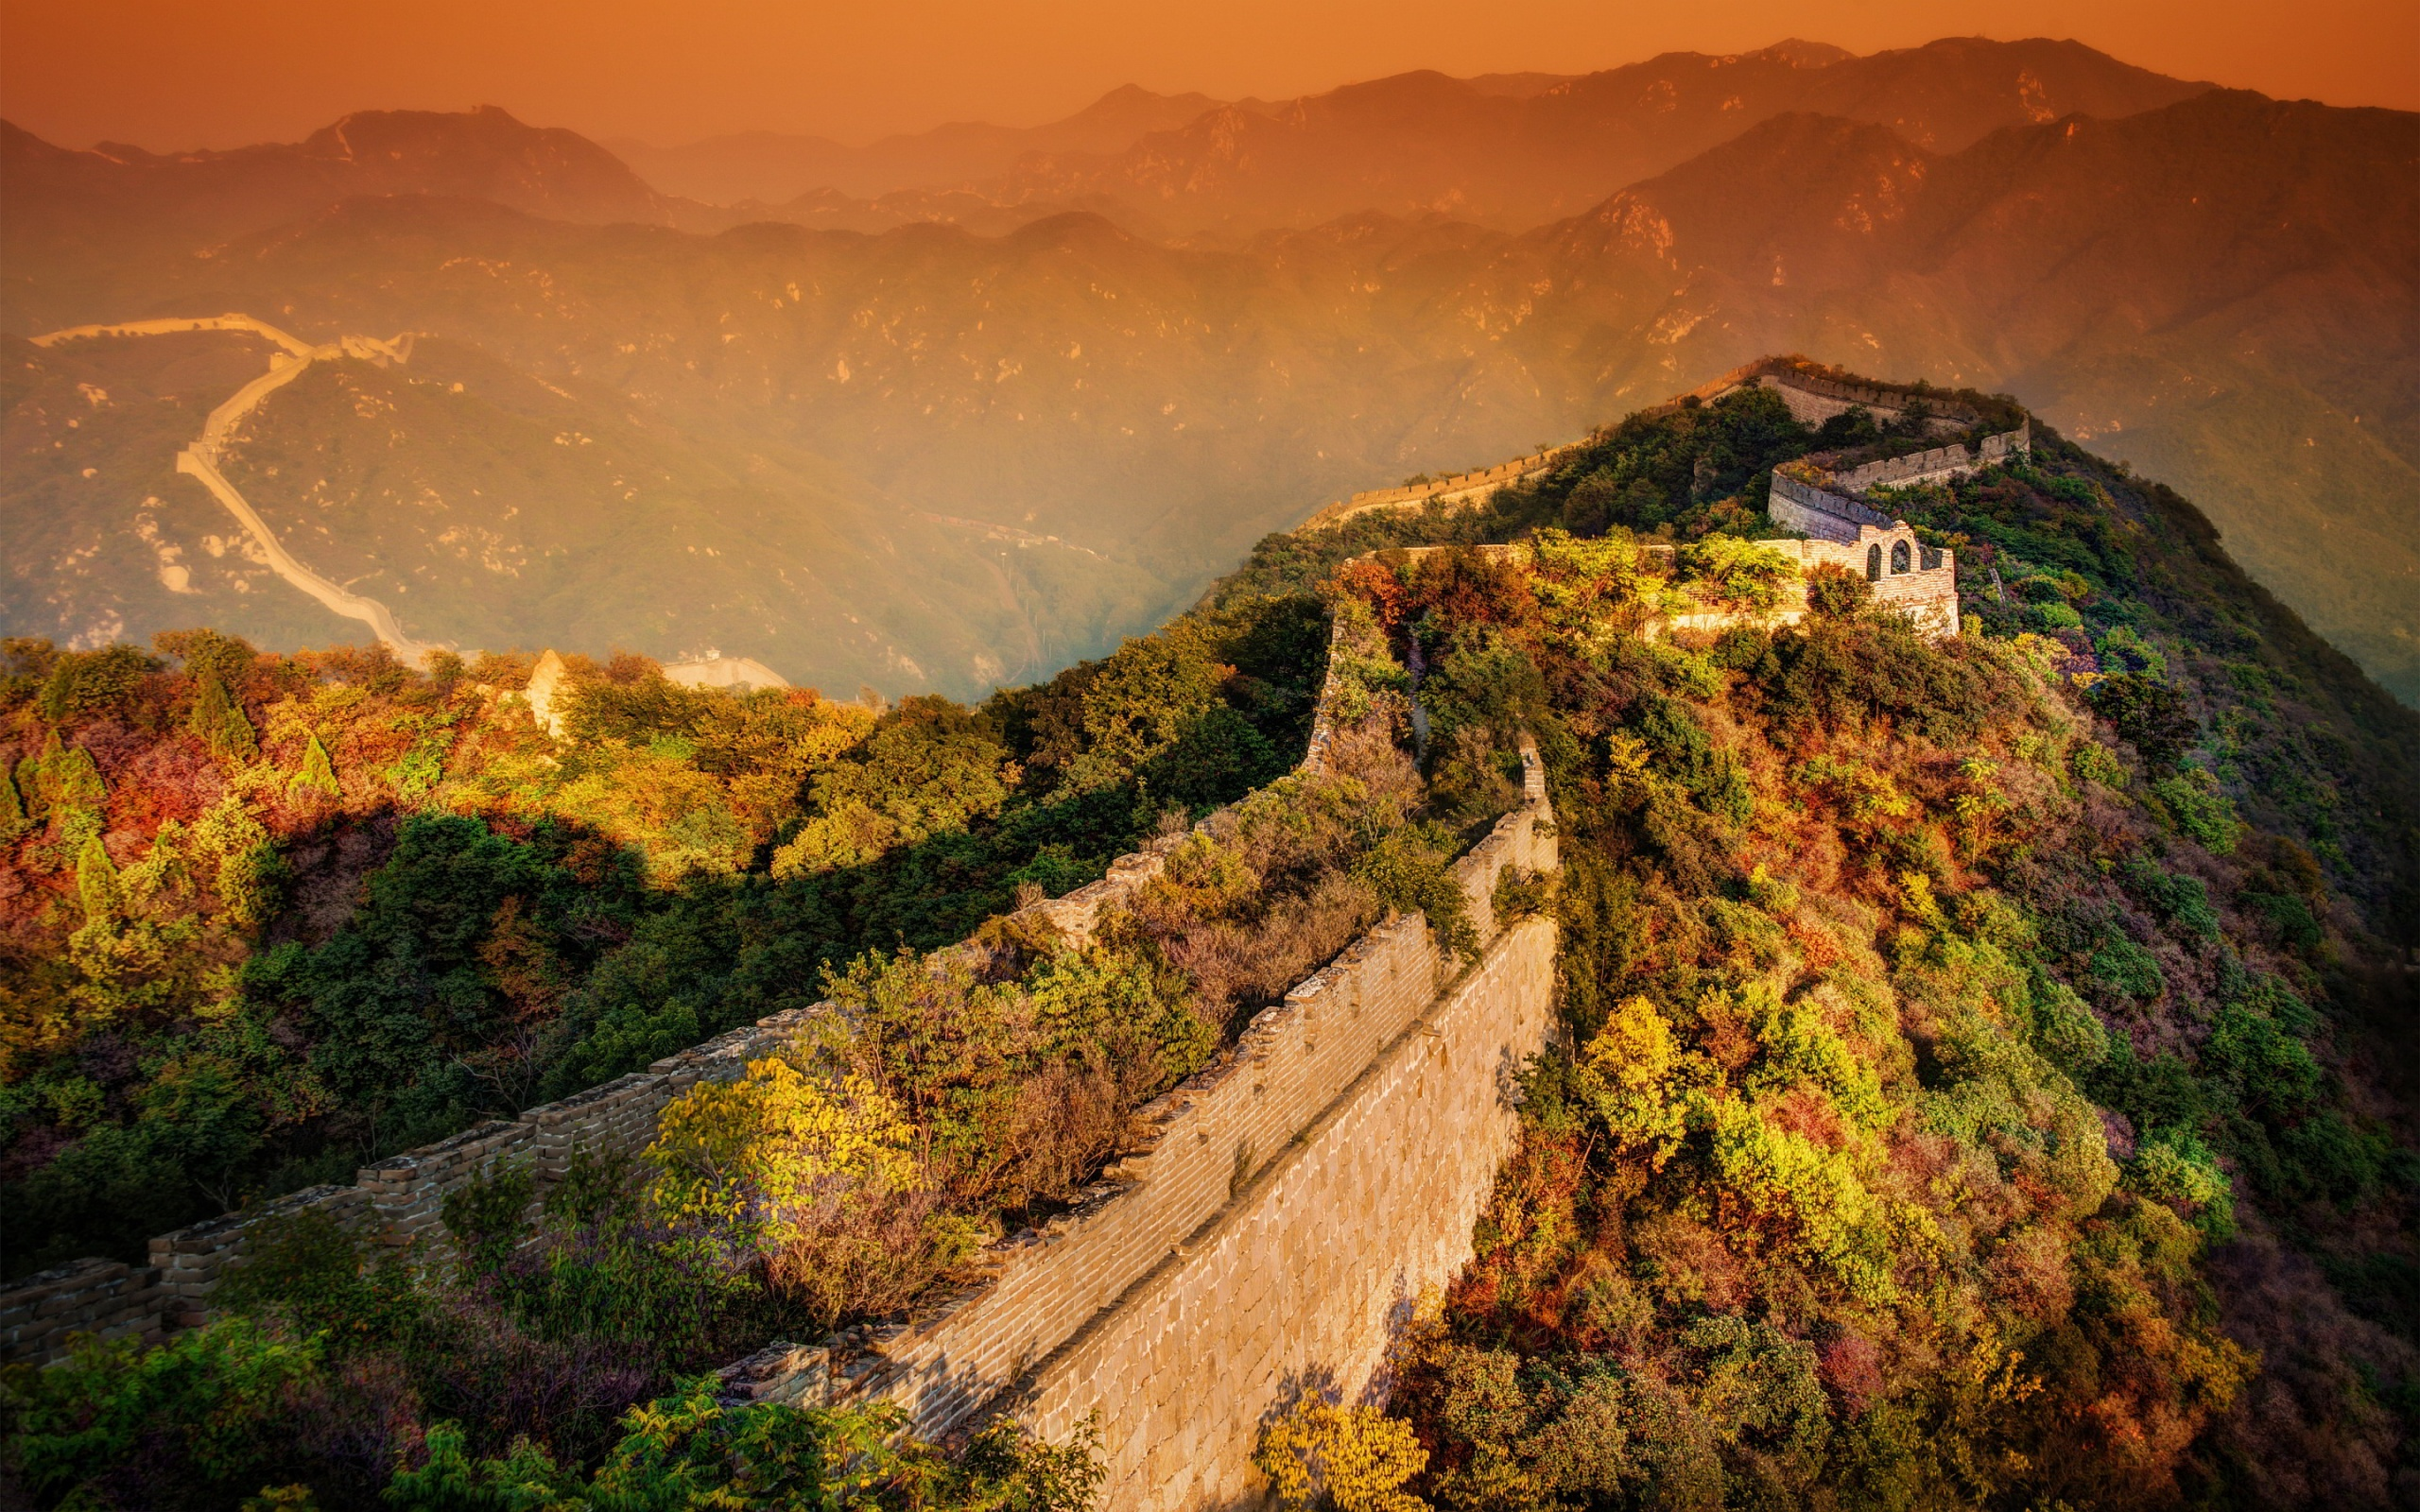 11 Hd Great Wall Of China Wallpapers